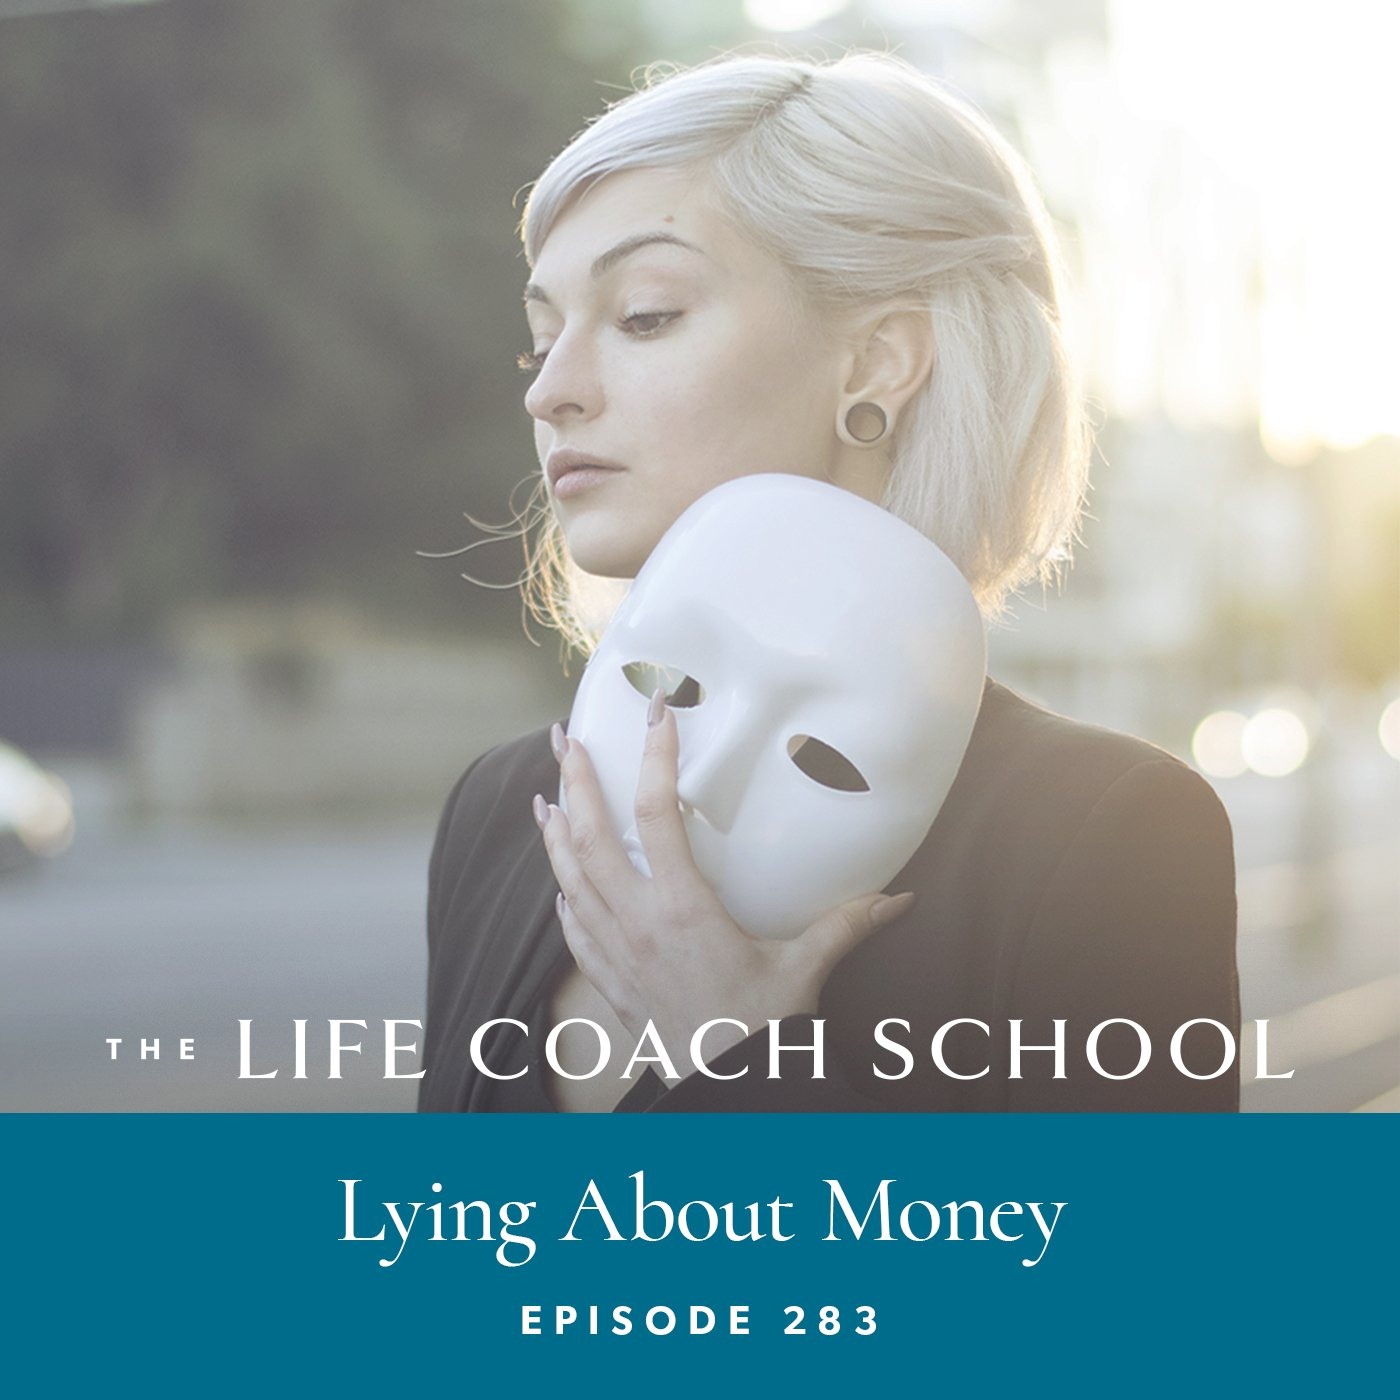 The Life Coach School Podcast with Brooke Castillo | Episode 283 | Lying About Money